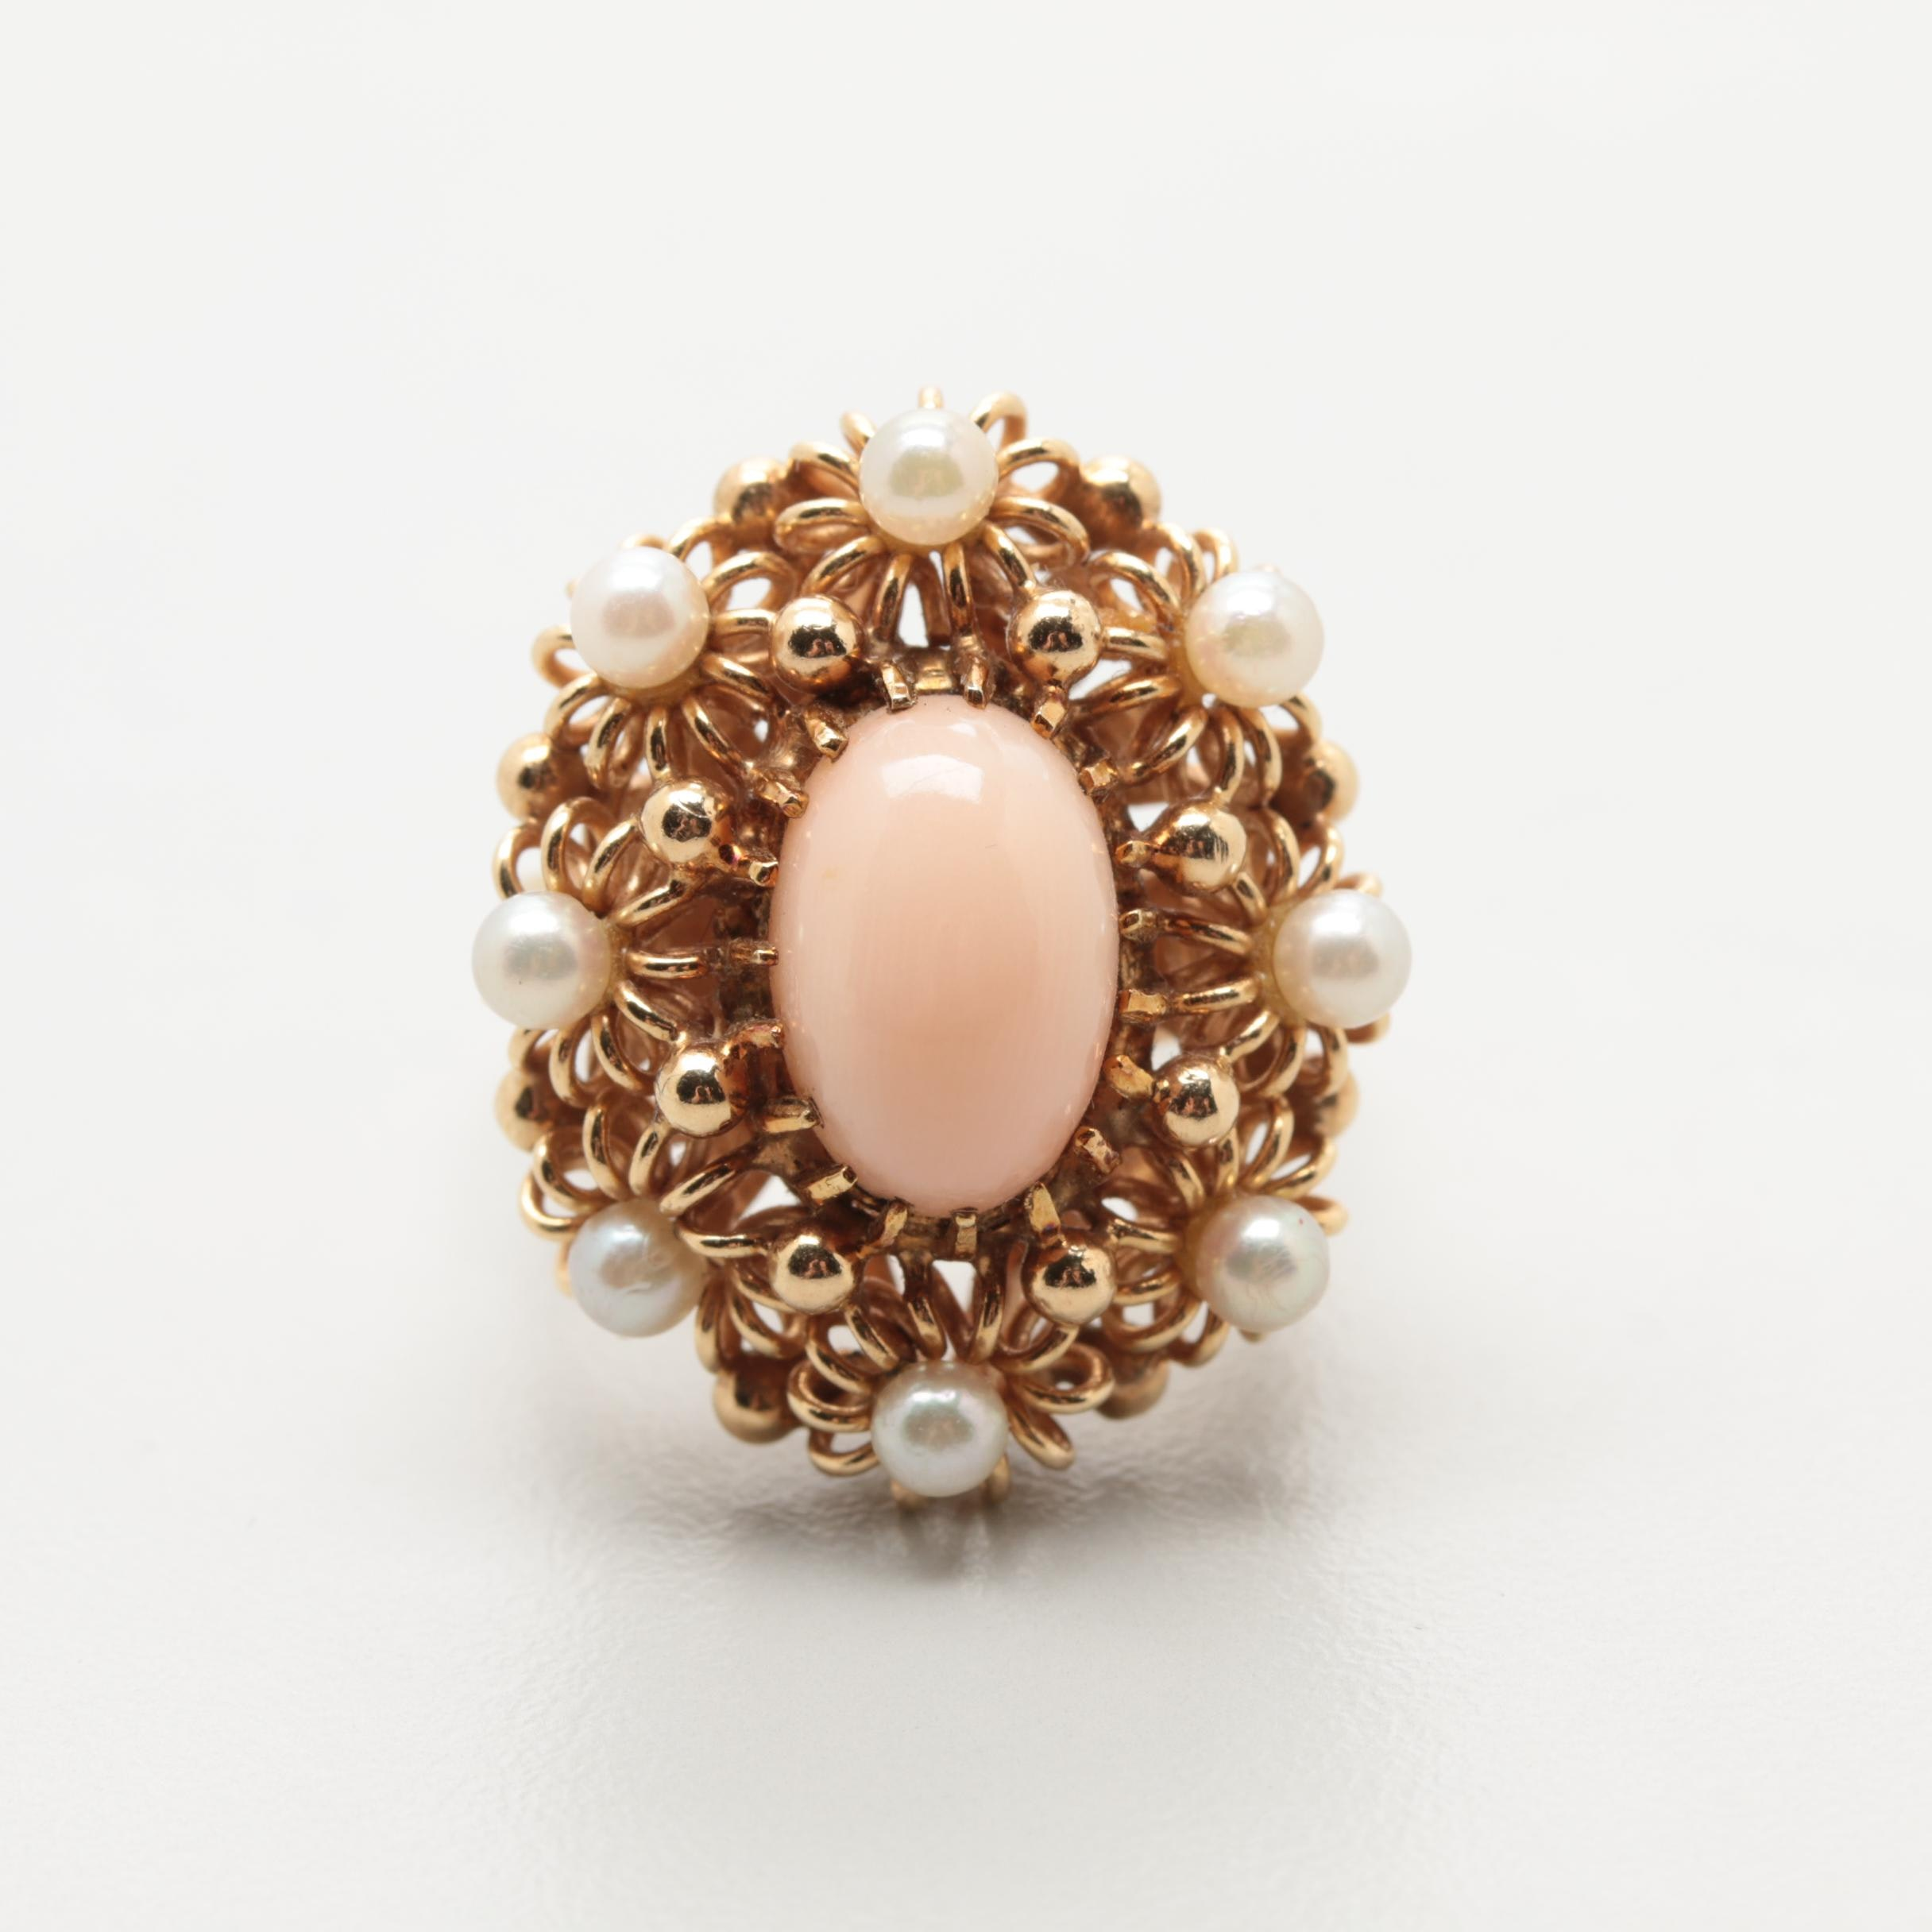 14K Yellow Gold Coral and Cultured Pearl Ring